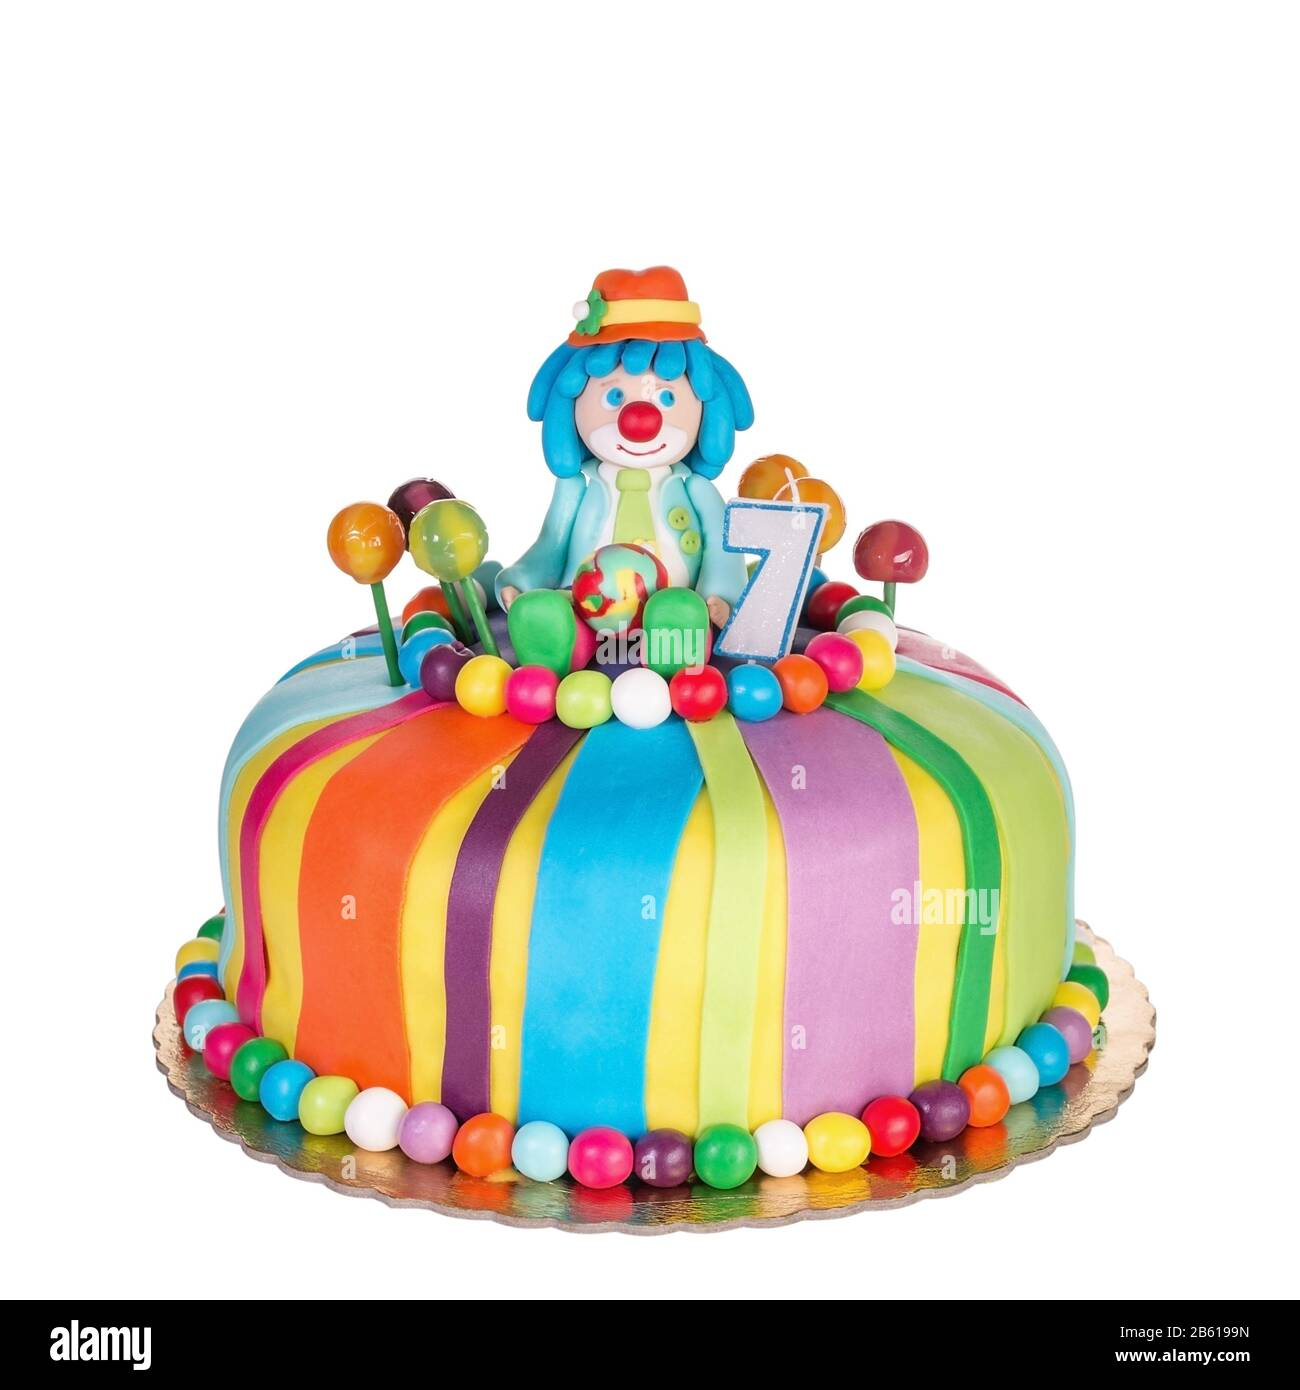 Astonishing Gorgeous Birthday Cake For Children With Colorful Sweets Stock Funny Birthday Cards Online Unhofree Goldxyz